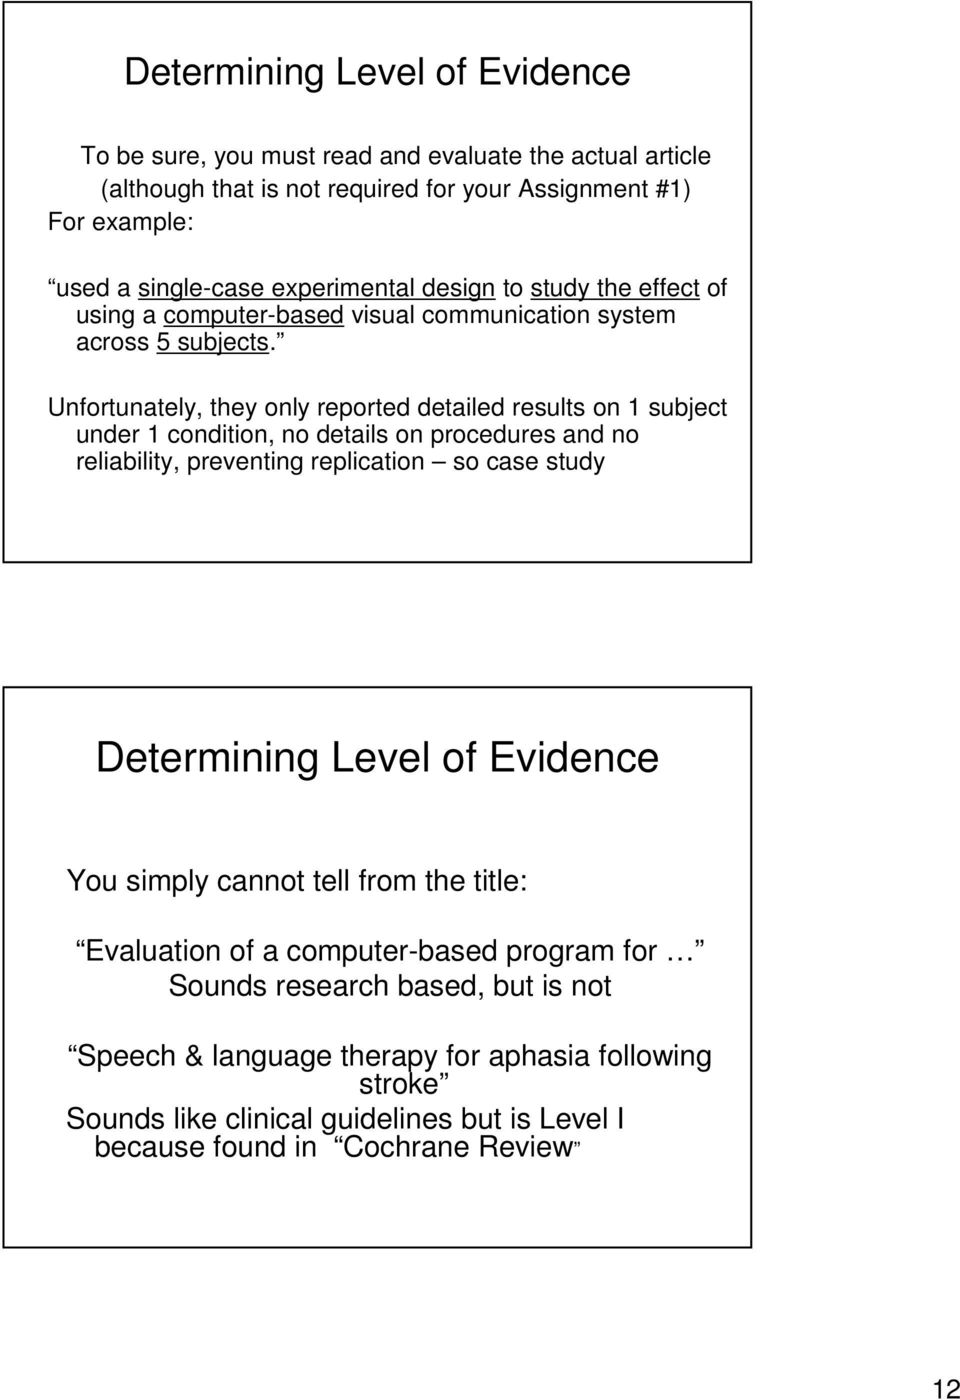 Evidence-Based Practice and This Course - PDF